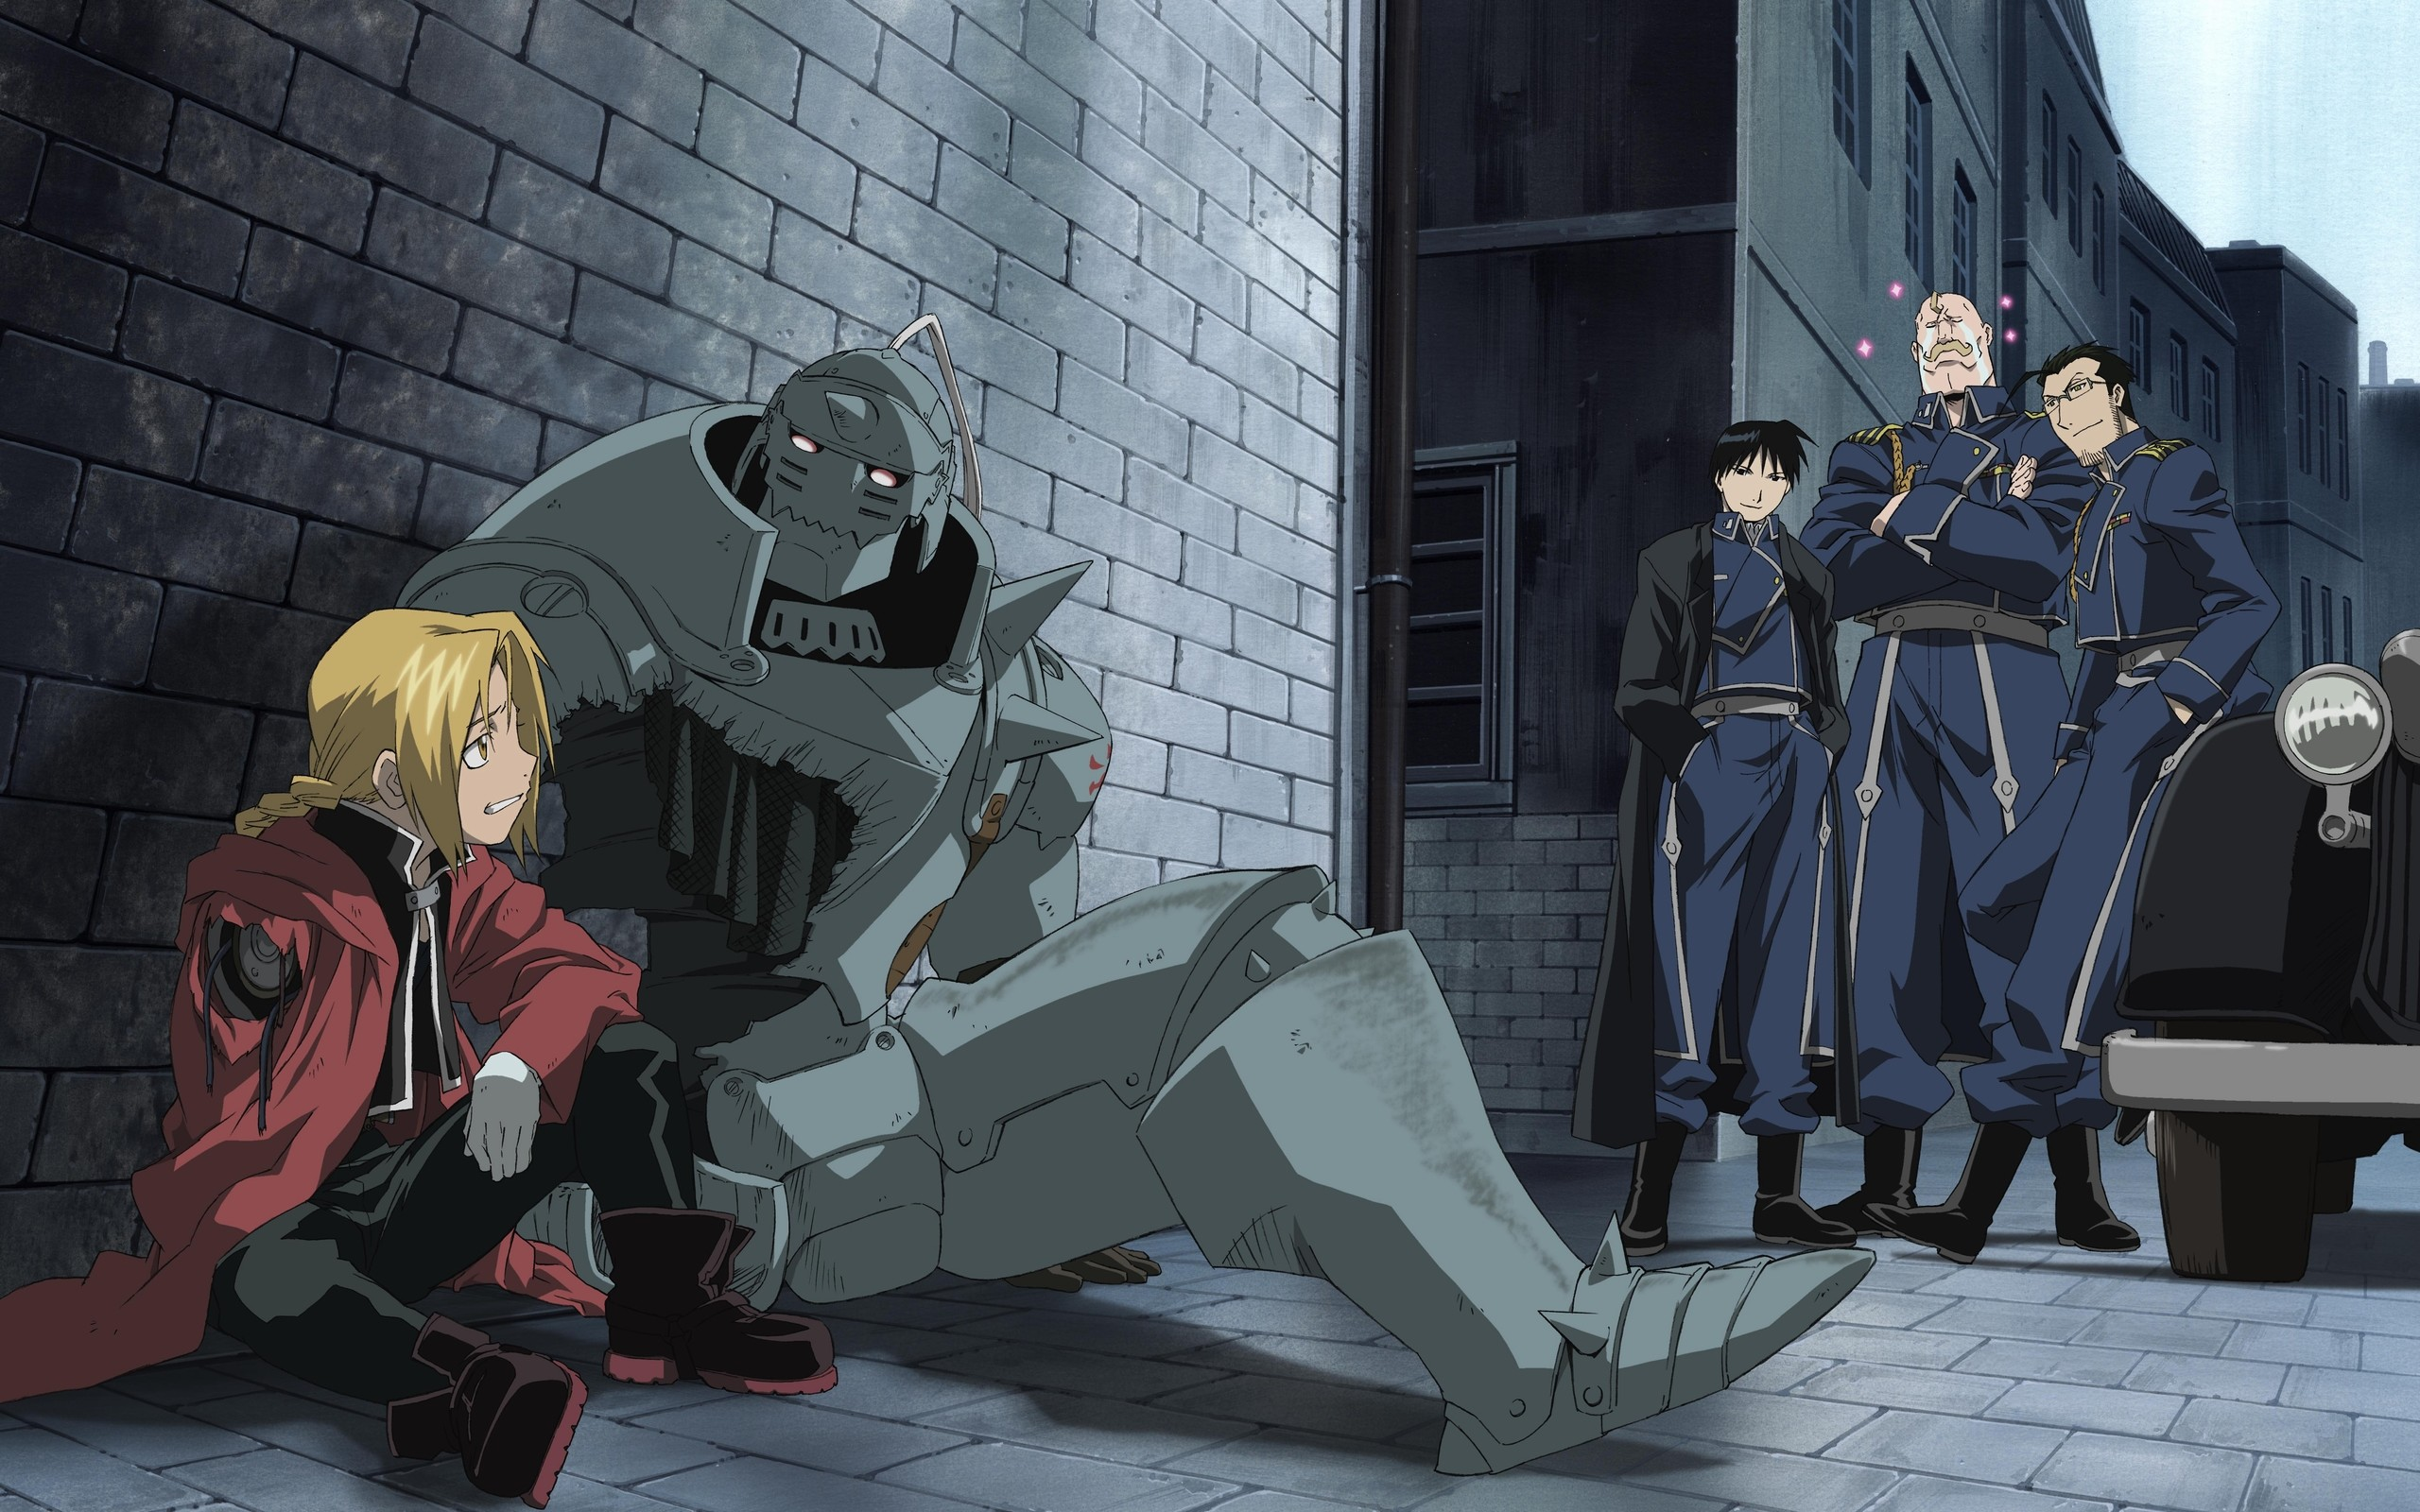 2560x1600 FullMetal Alchemist HD Wallpaper | Background Image |  | ID:113975  - Wallpaper Abyss